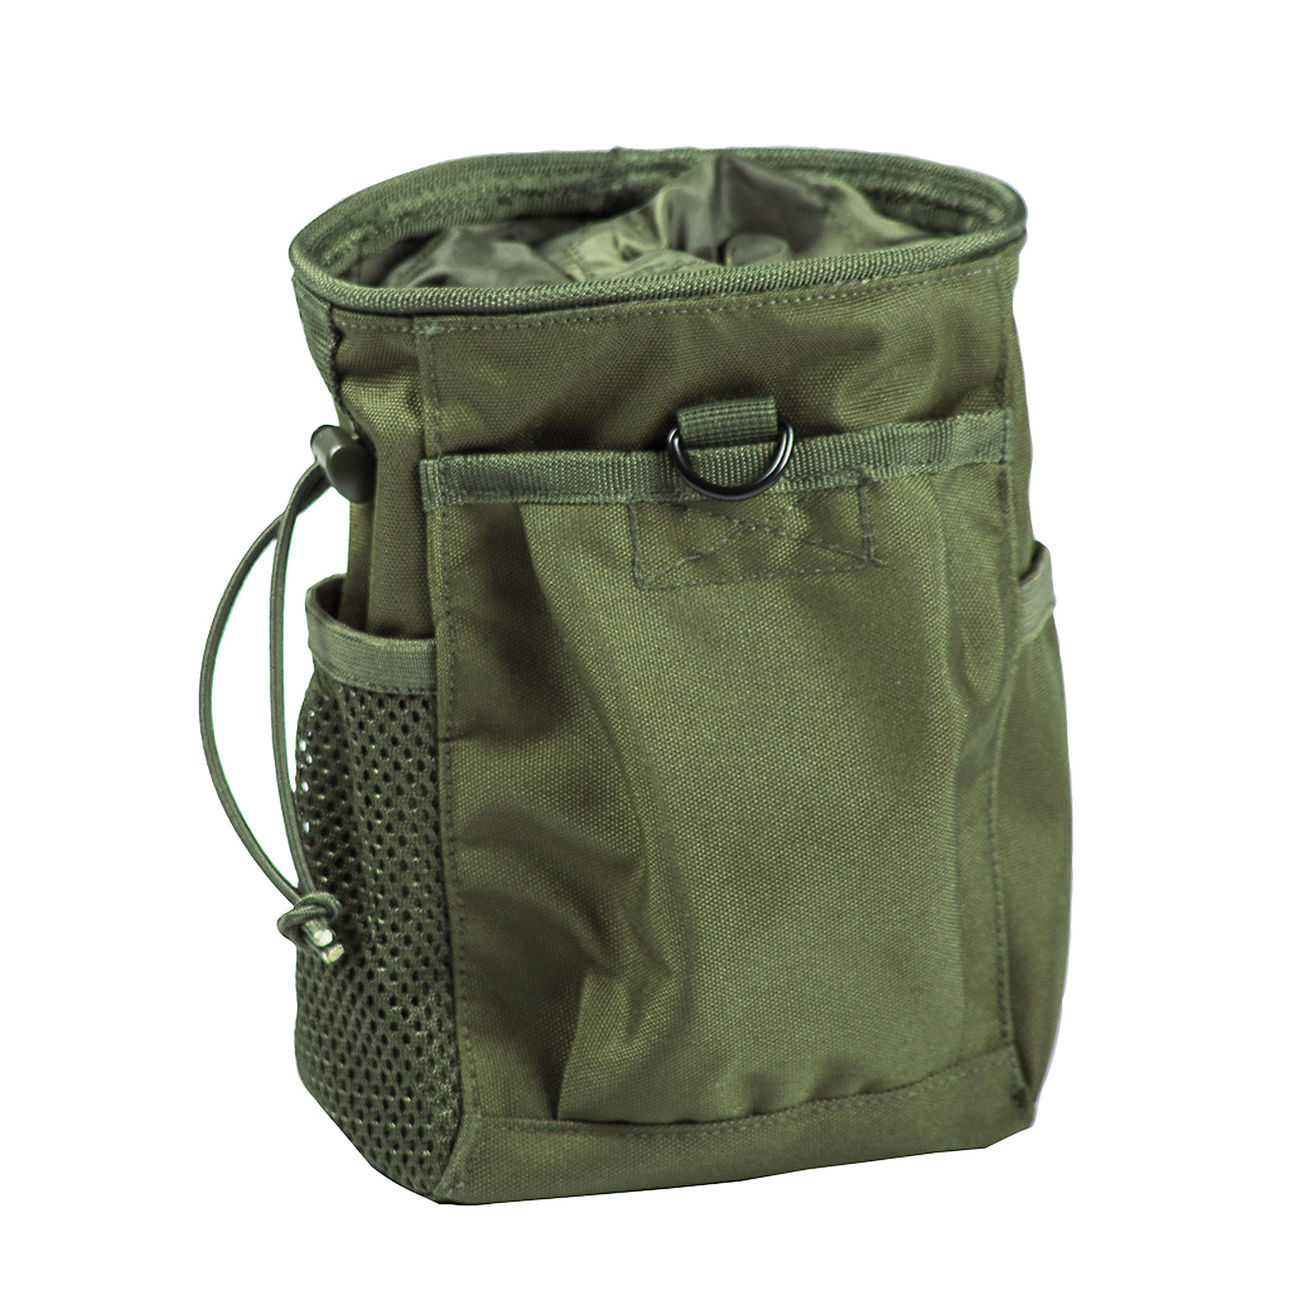 Mil-Tec Mehrzwecktasche Empty Shell Pouch Molle oliv 0